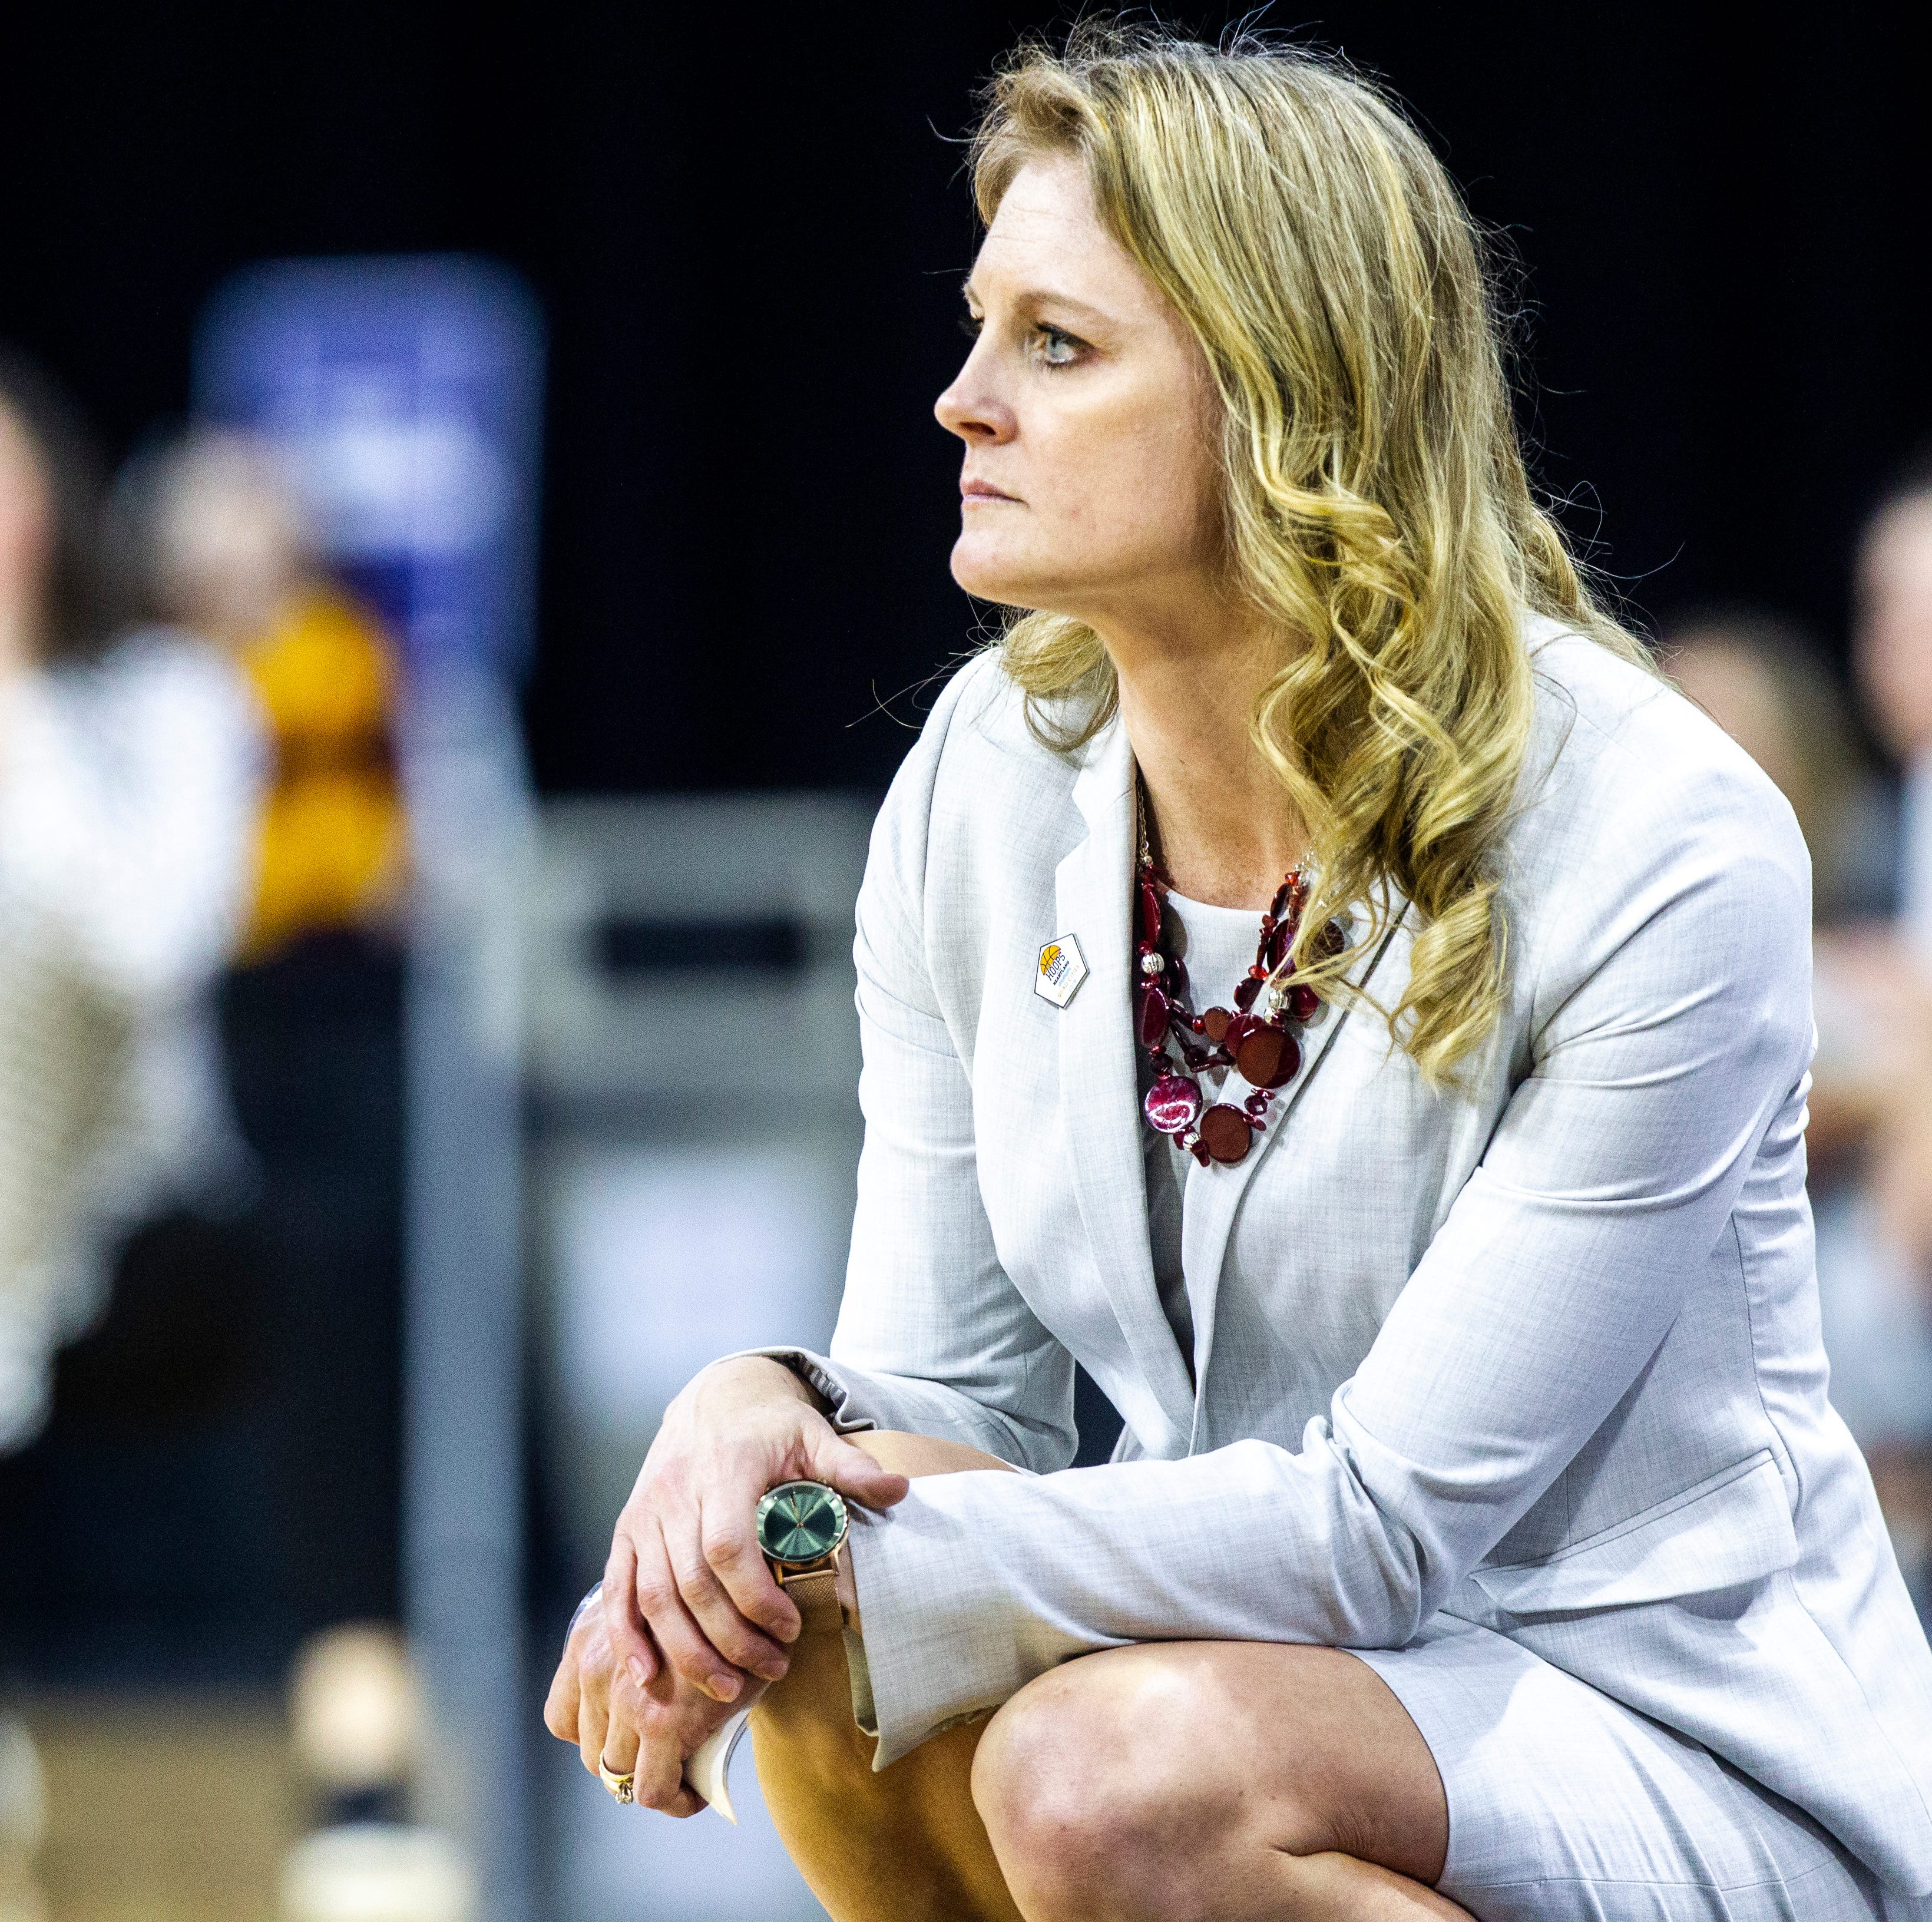 Kellie Harper as Lady Vols basketball coach a huge risk for her and Tennessee